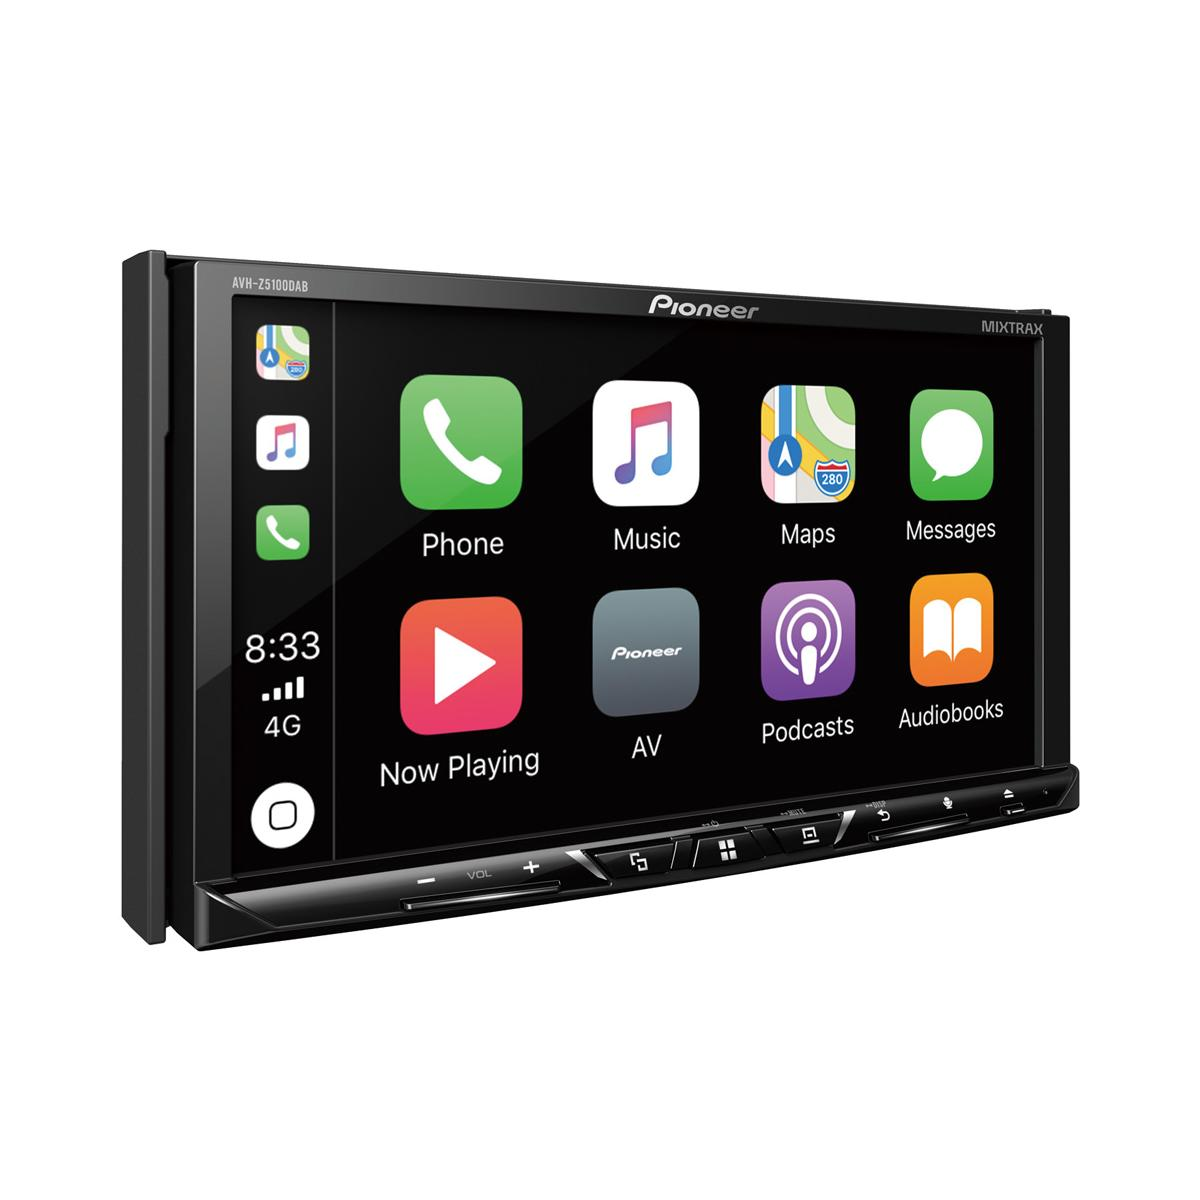 Double Din Screen Pioneer AVH-Z5100DAB 2